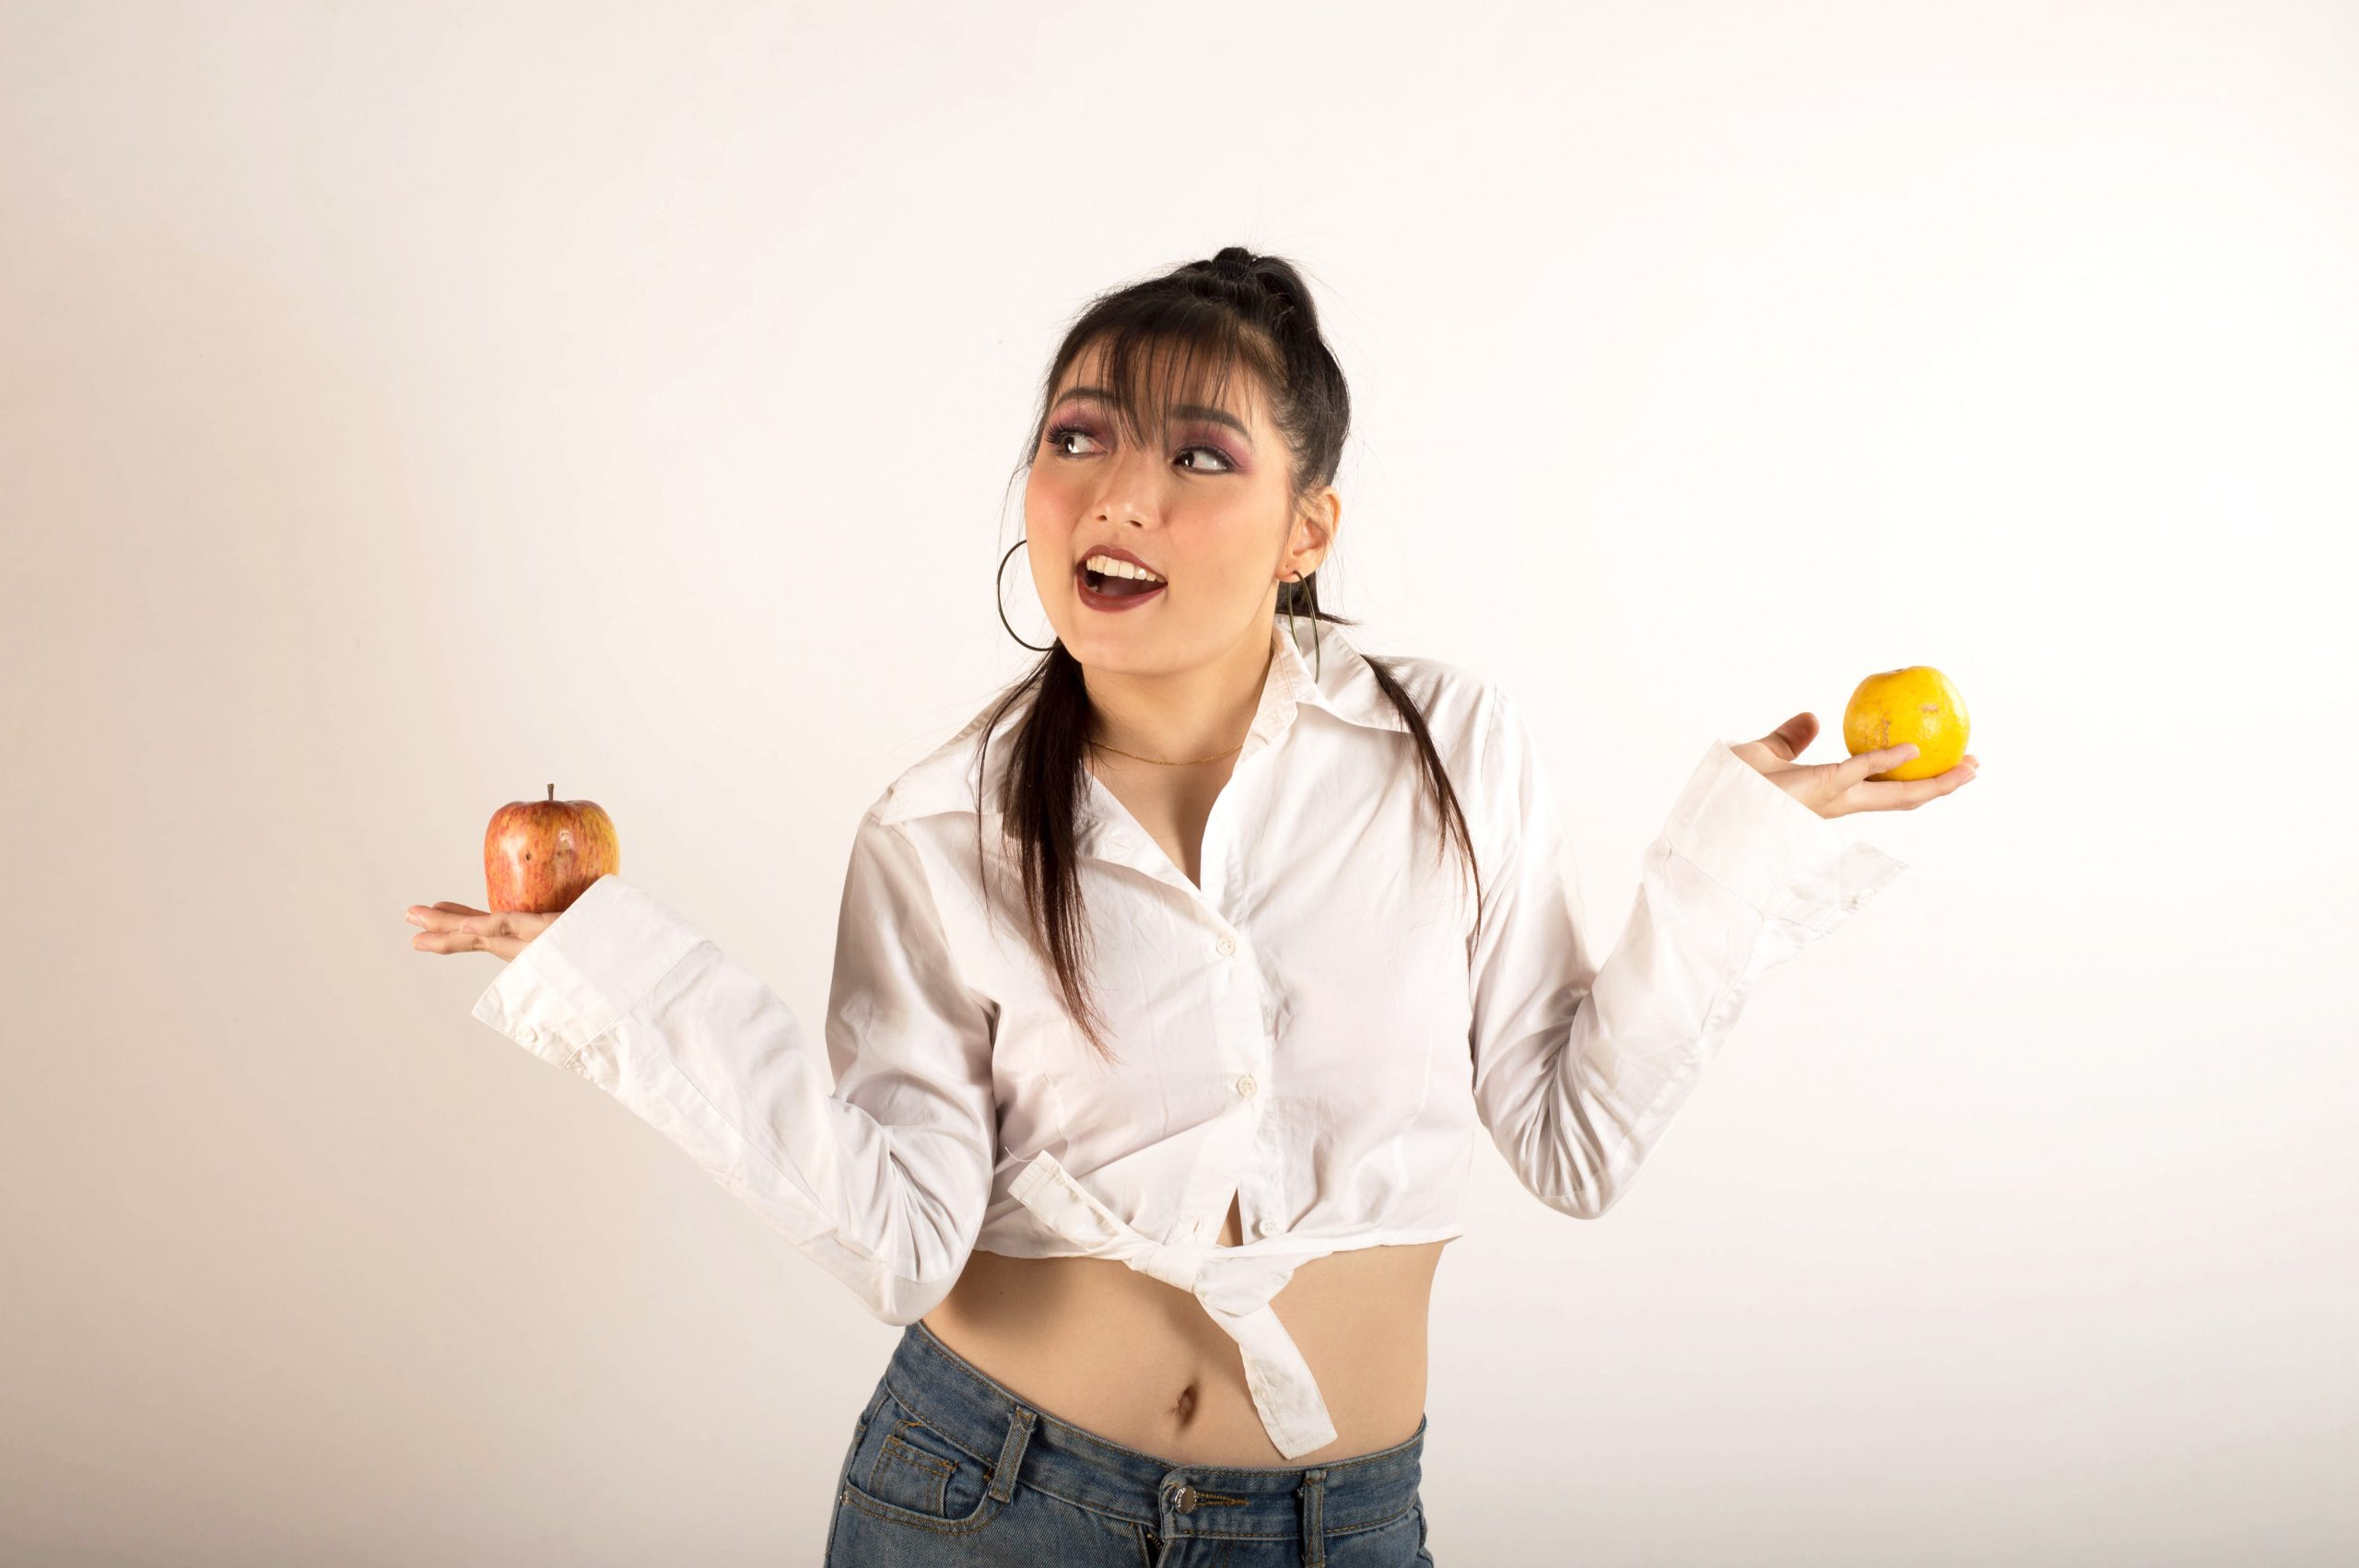 girl posing with fruits